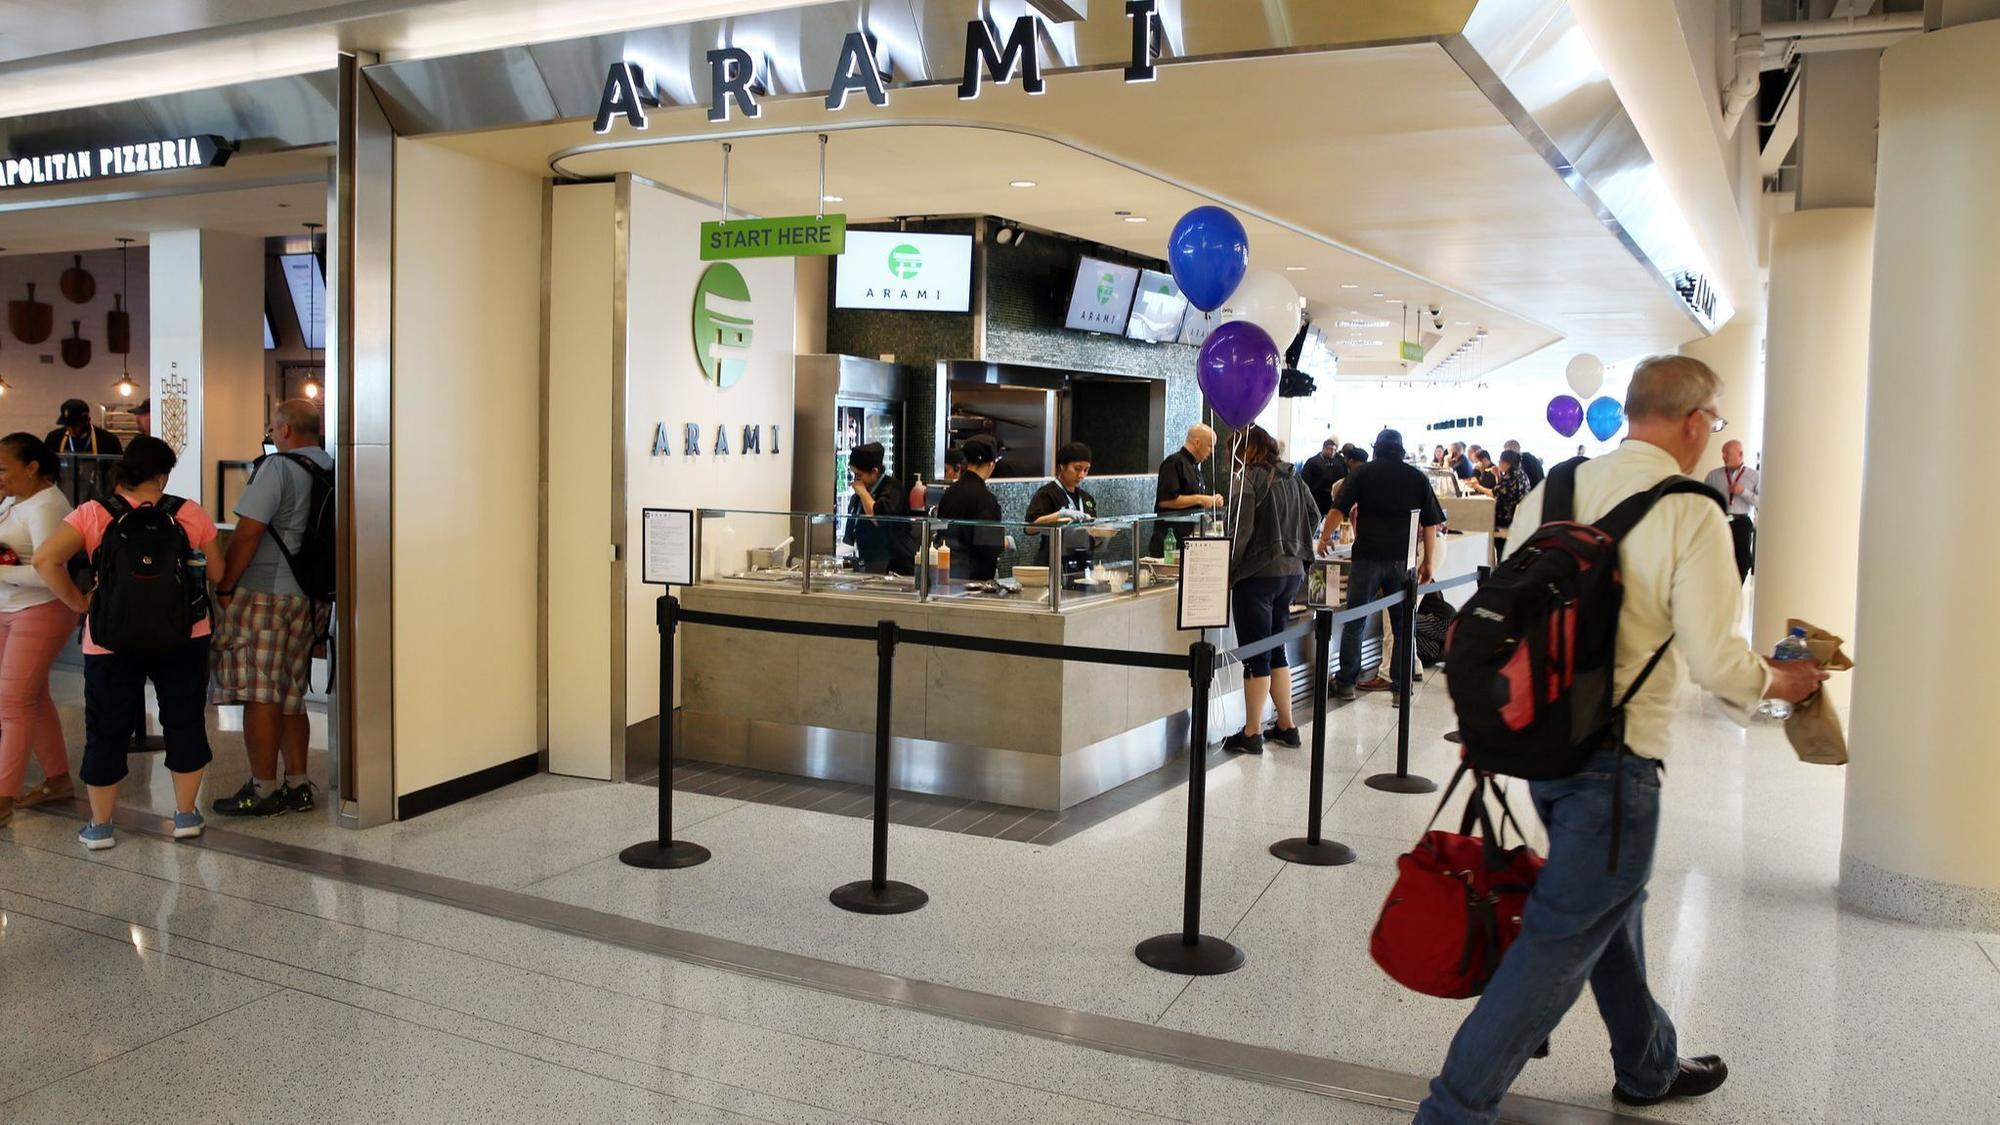 New Food Court Opens At Midway Airport A Year After Massive